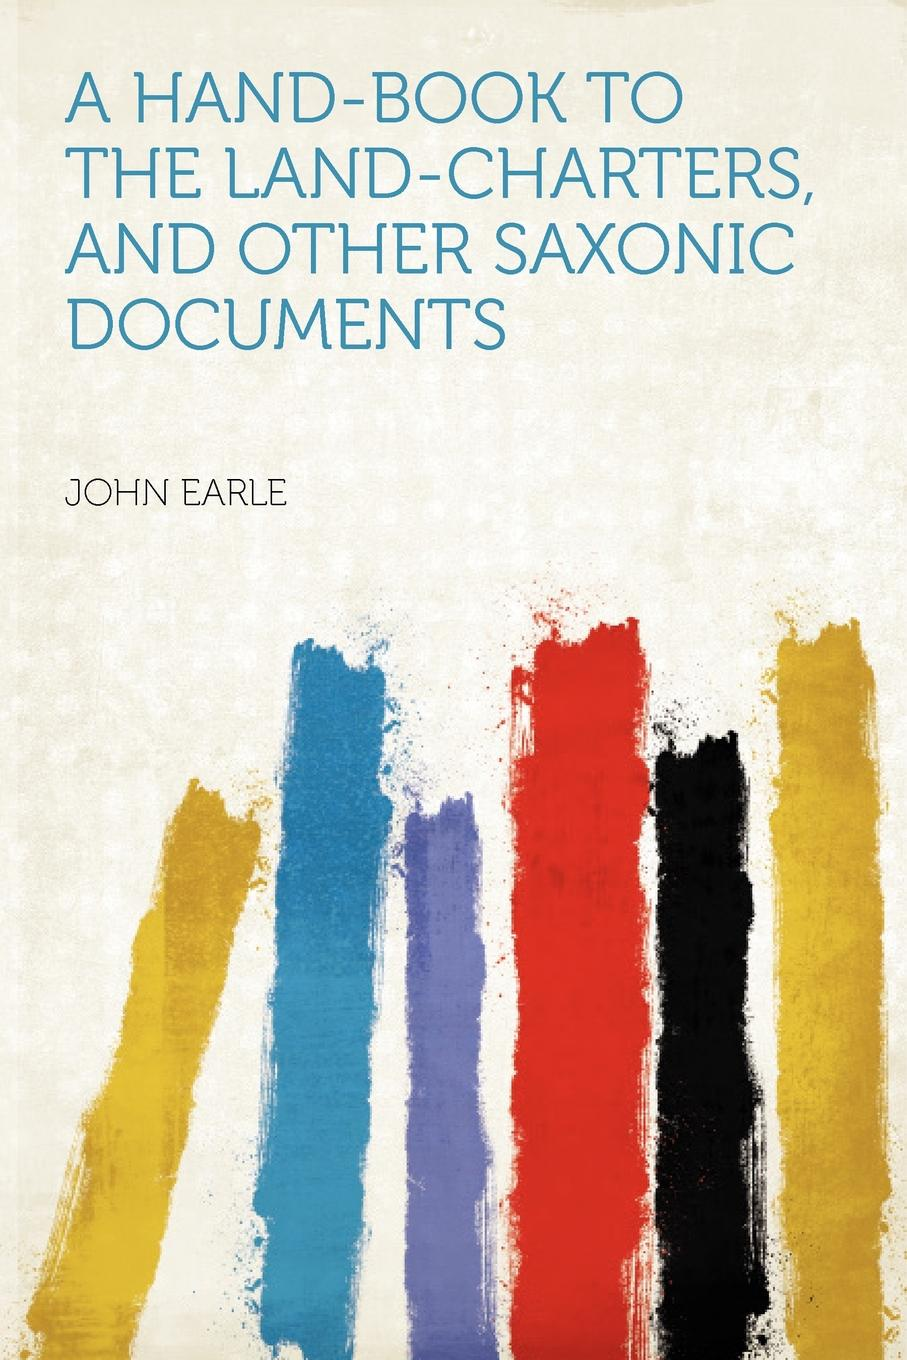 A Hand-book to the Land-charters, and Other Saxonic Documents